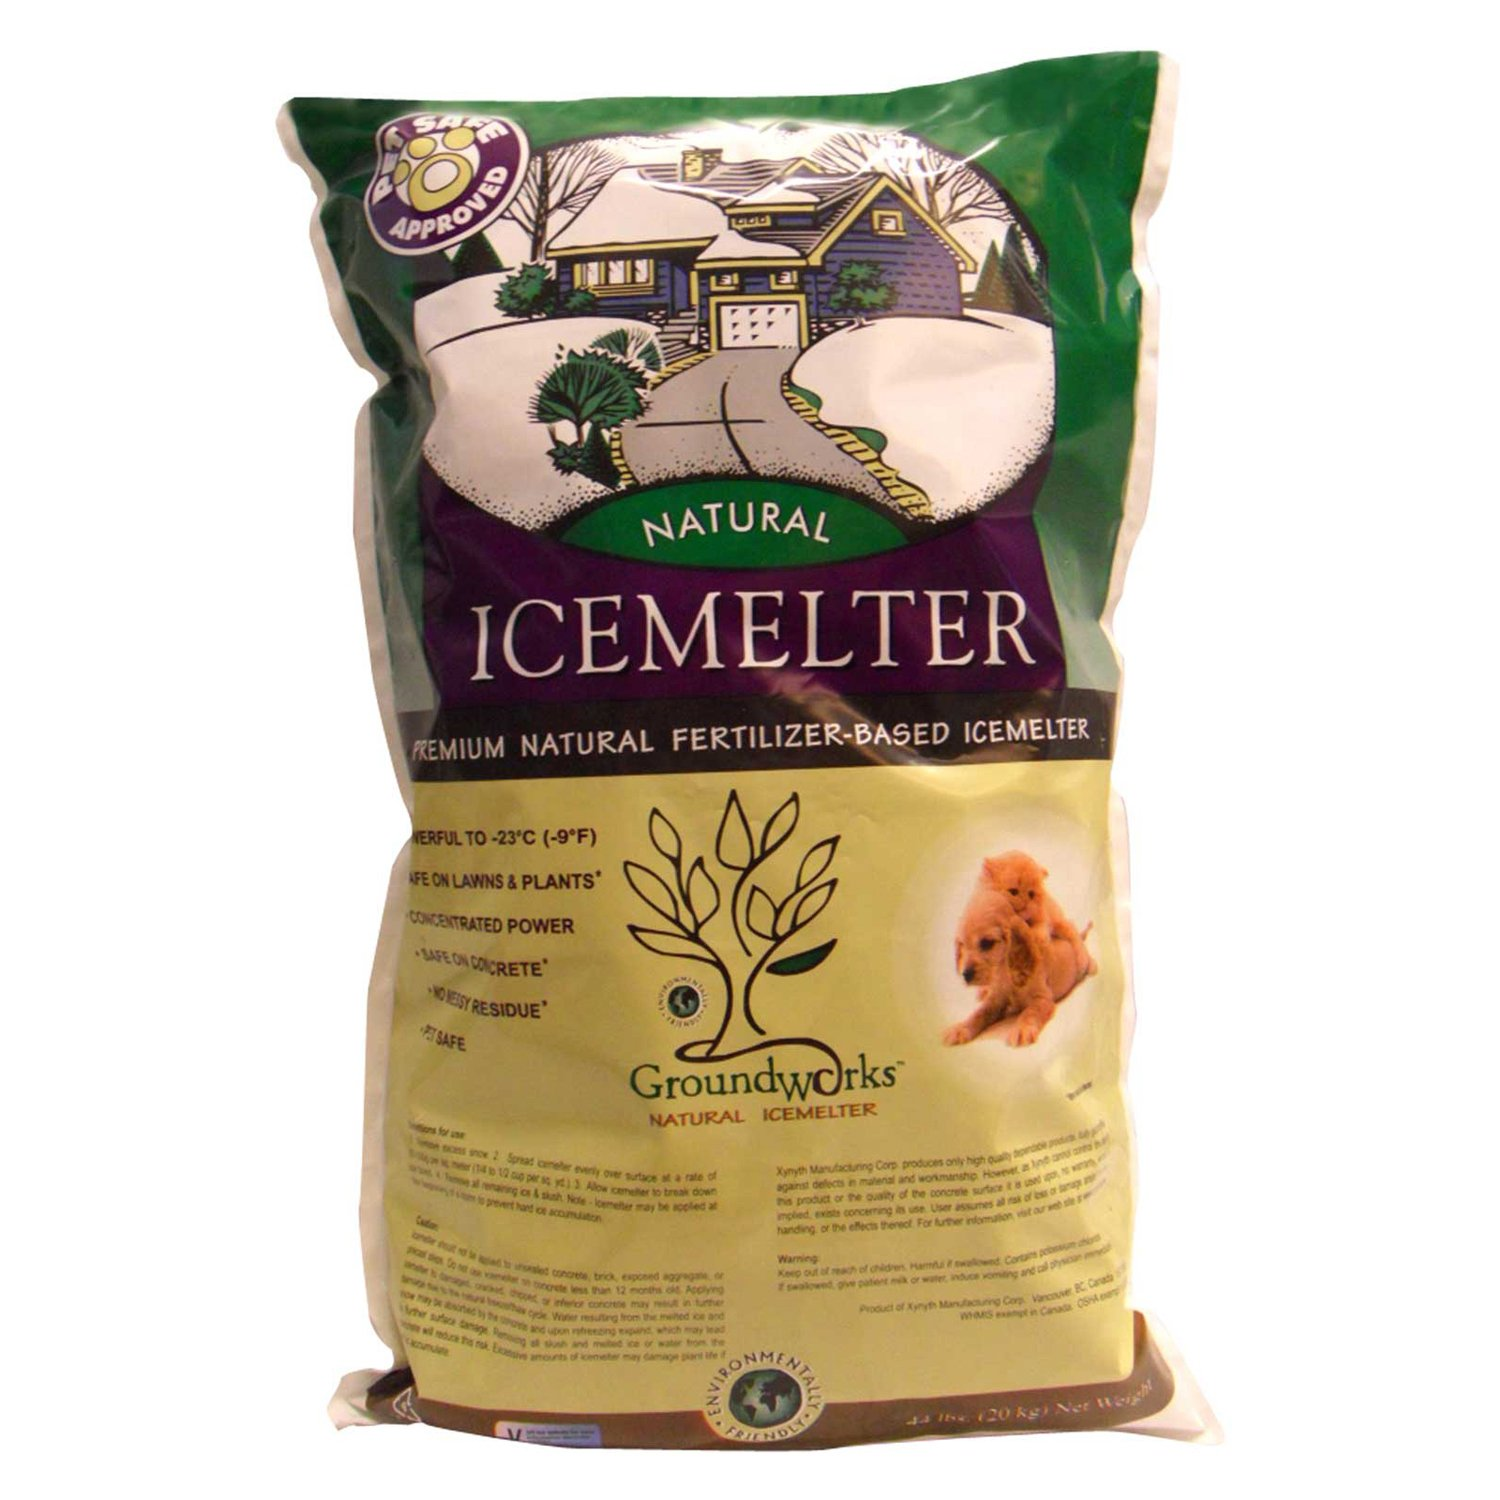 Xynyth Manufacturing Corp 200-21043 44 Lb GroundworksTM Natural Ice Melter